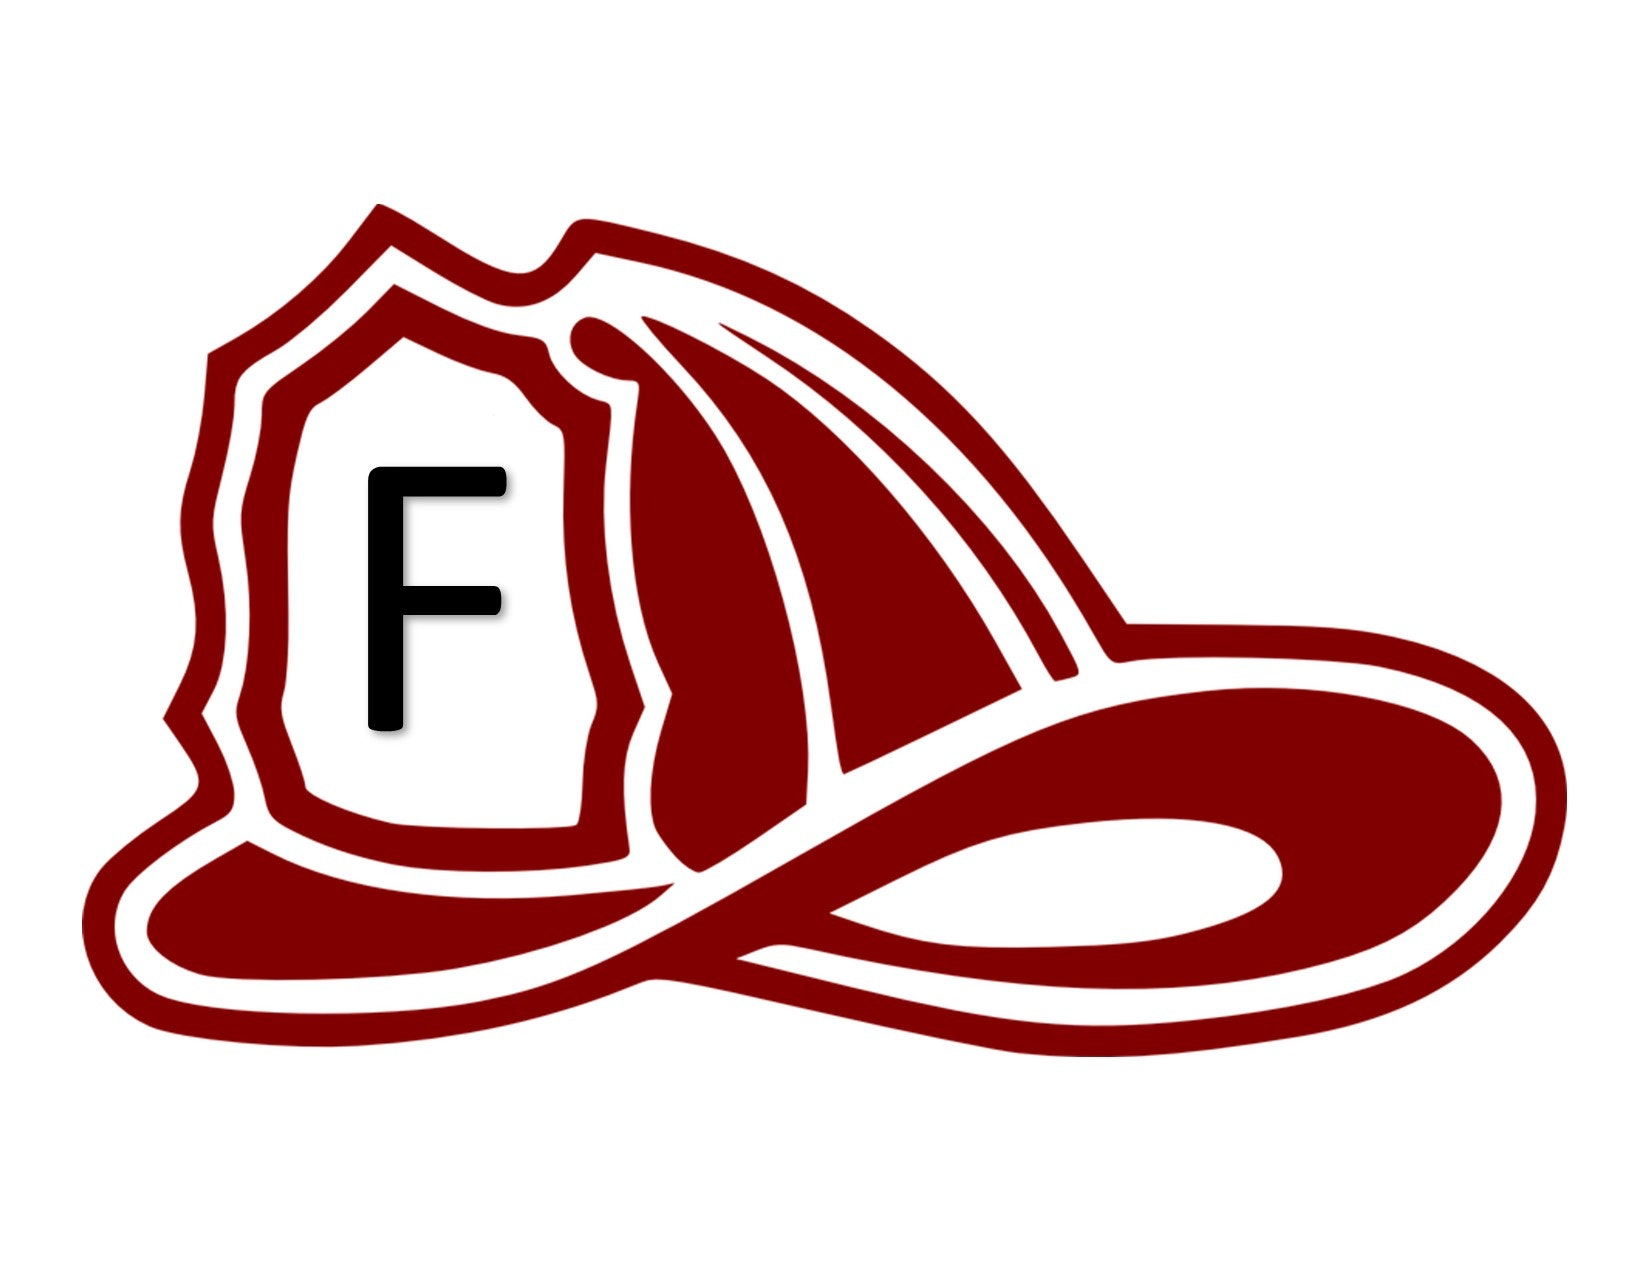 Fire helmet outline with an F on the front